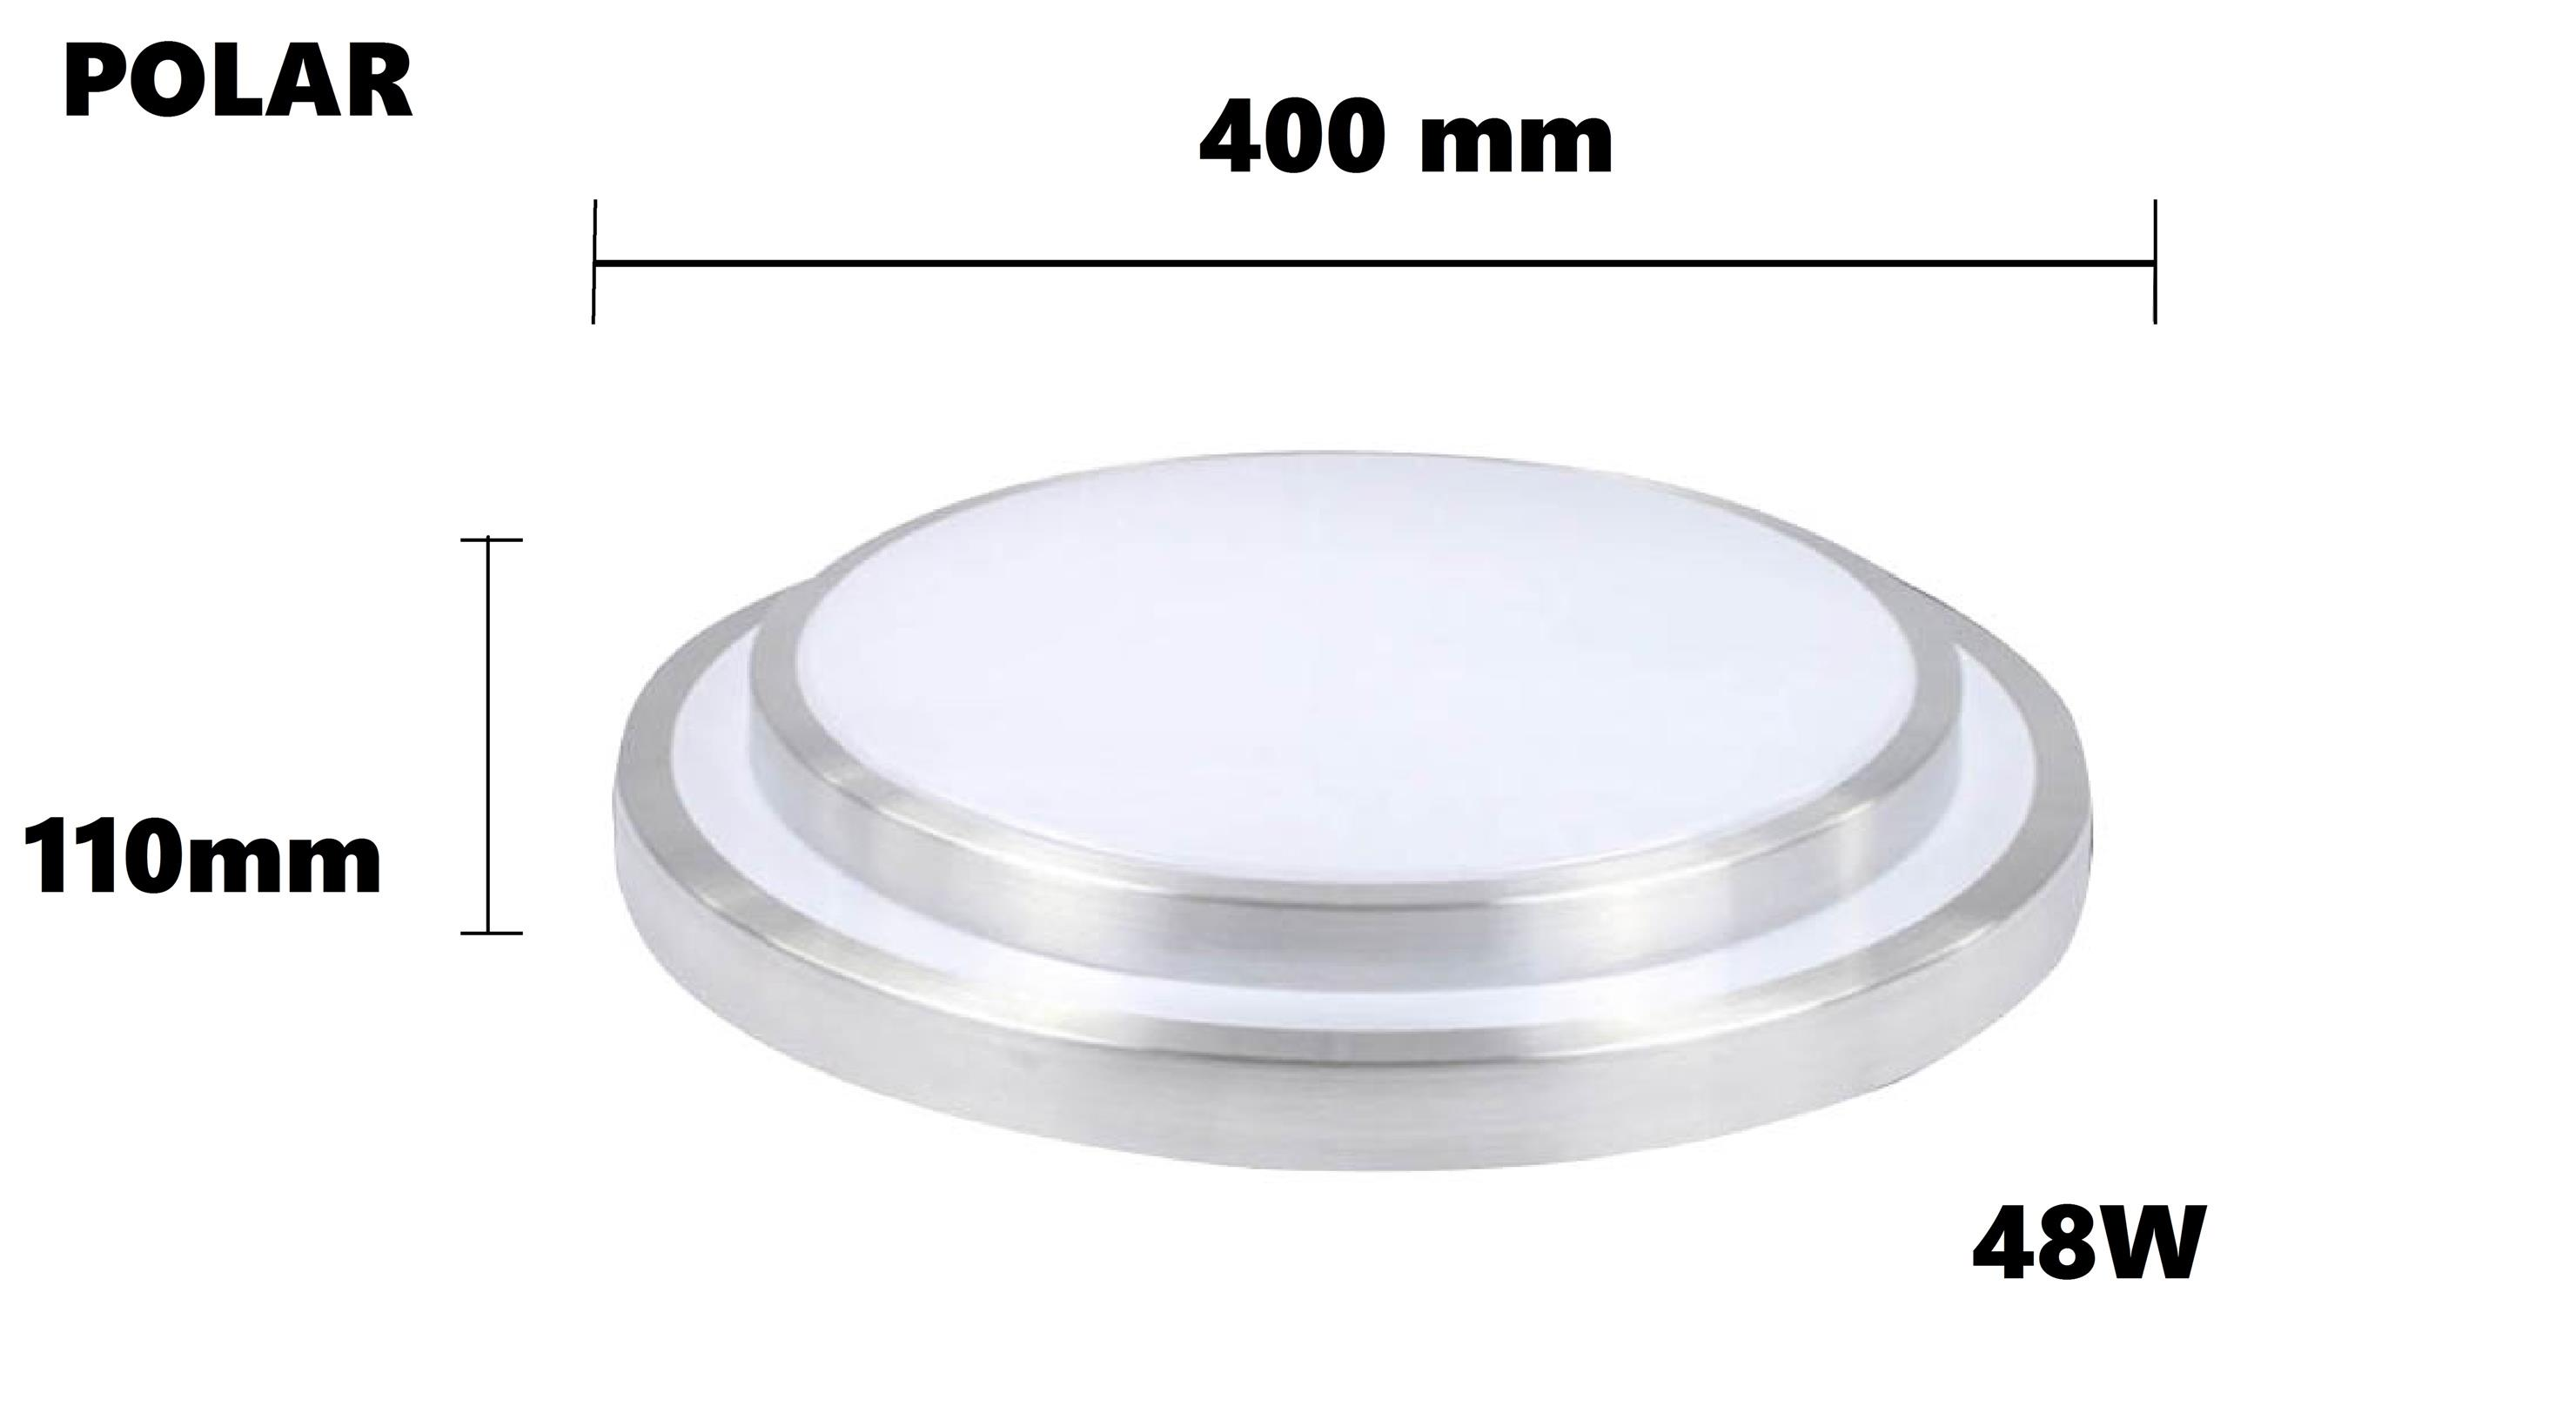 48W POLAR LED CEILING LIGHT (2 LAYER) Daylight